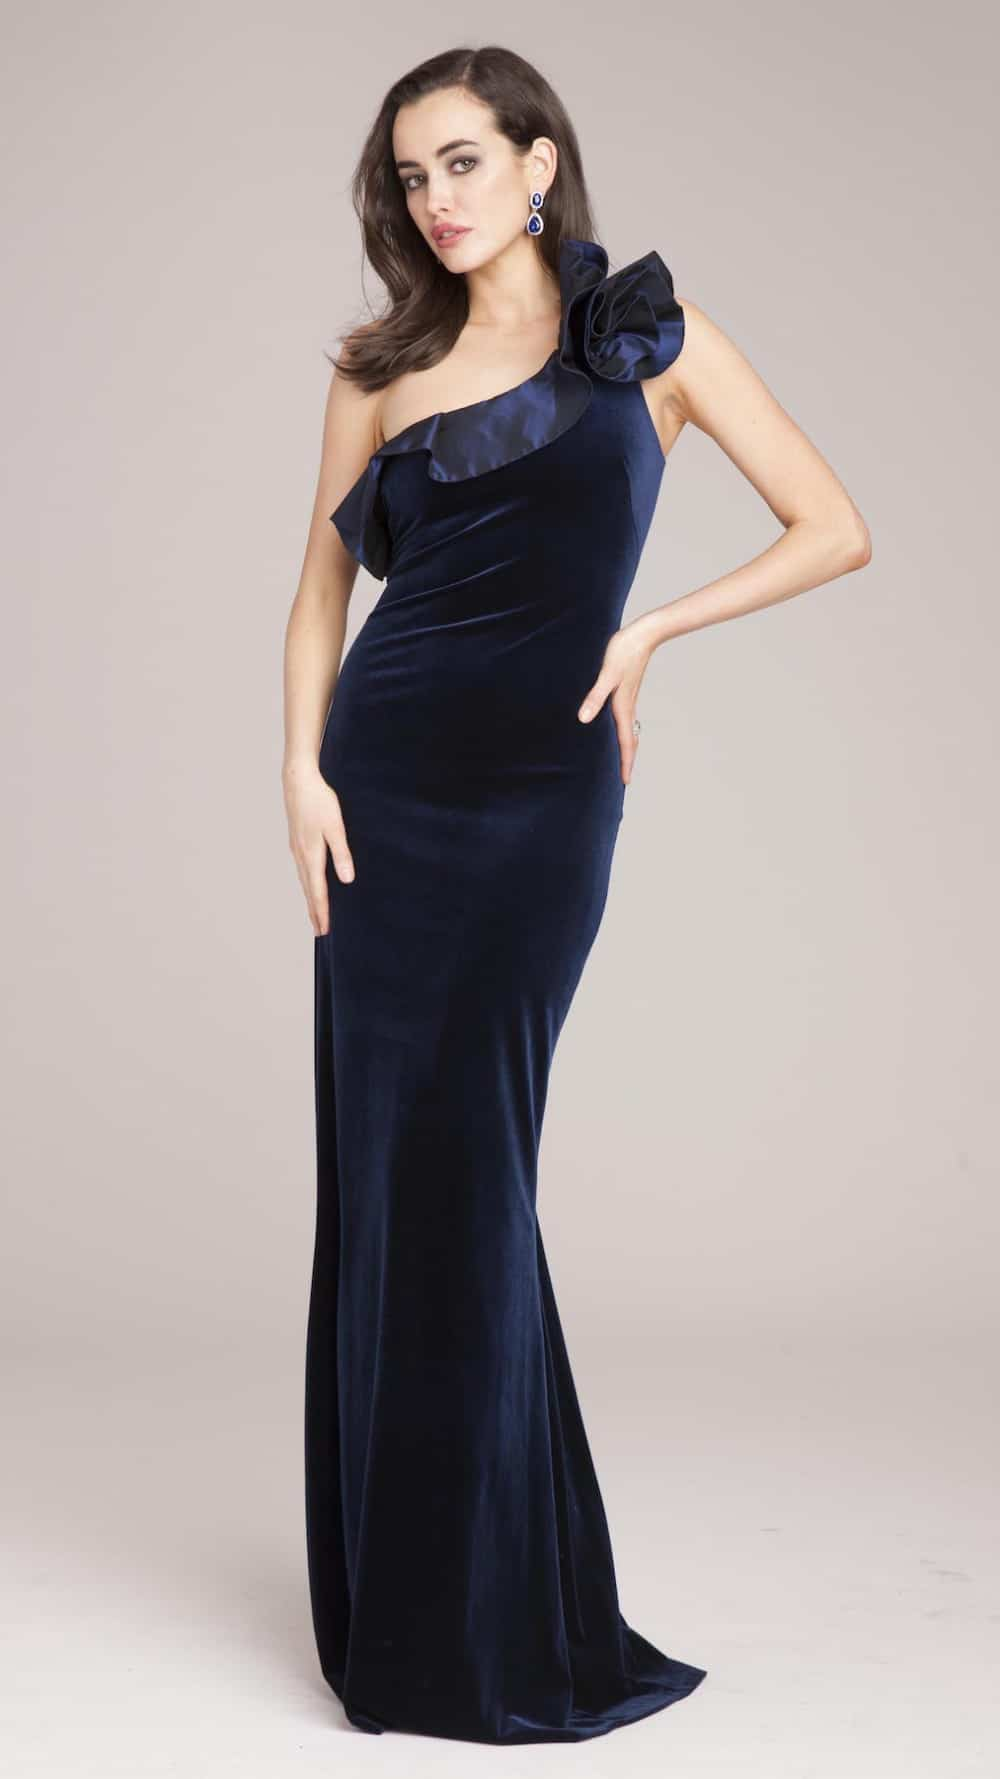 One Shoulder Navy Blue Velvet Gown Dress For The Wedding